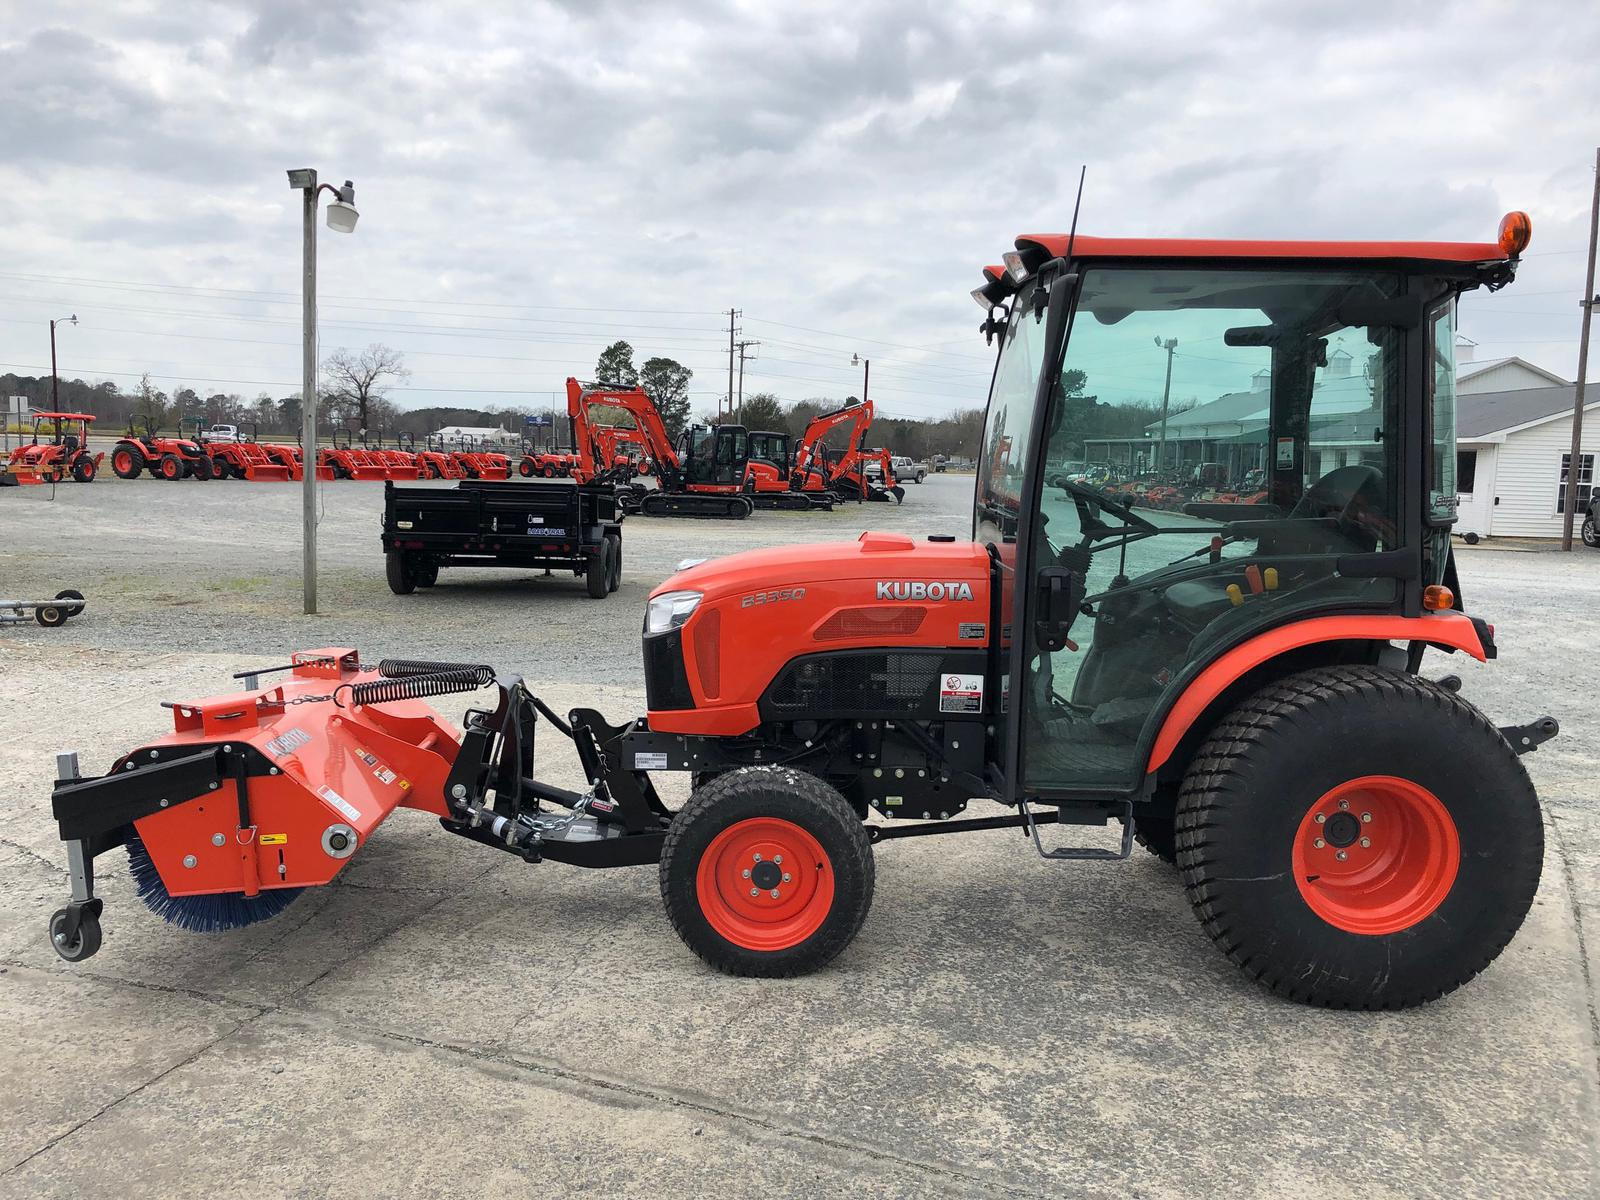 Inventory from Kubota and Load Trail Trailers Musgrave Equipment Co